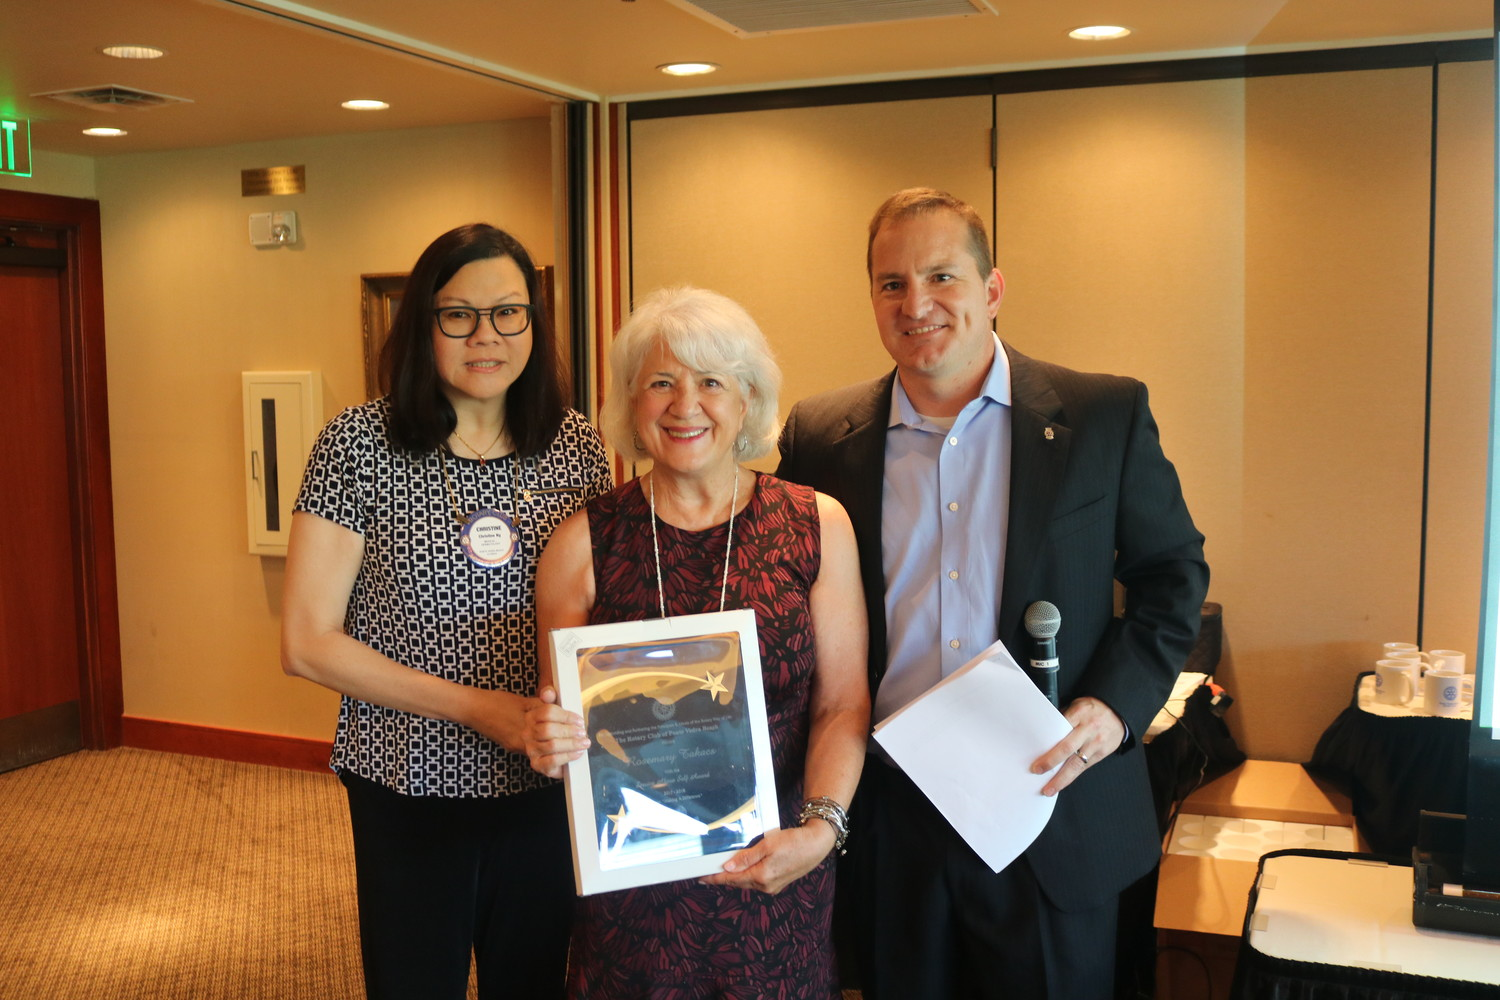 Rosemary Takacs (center) receives the Service Above Self Award from Christine Ng (left) and Billy Wagner (right).